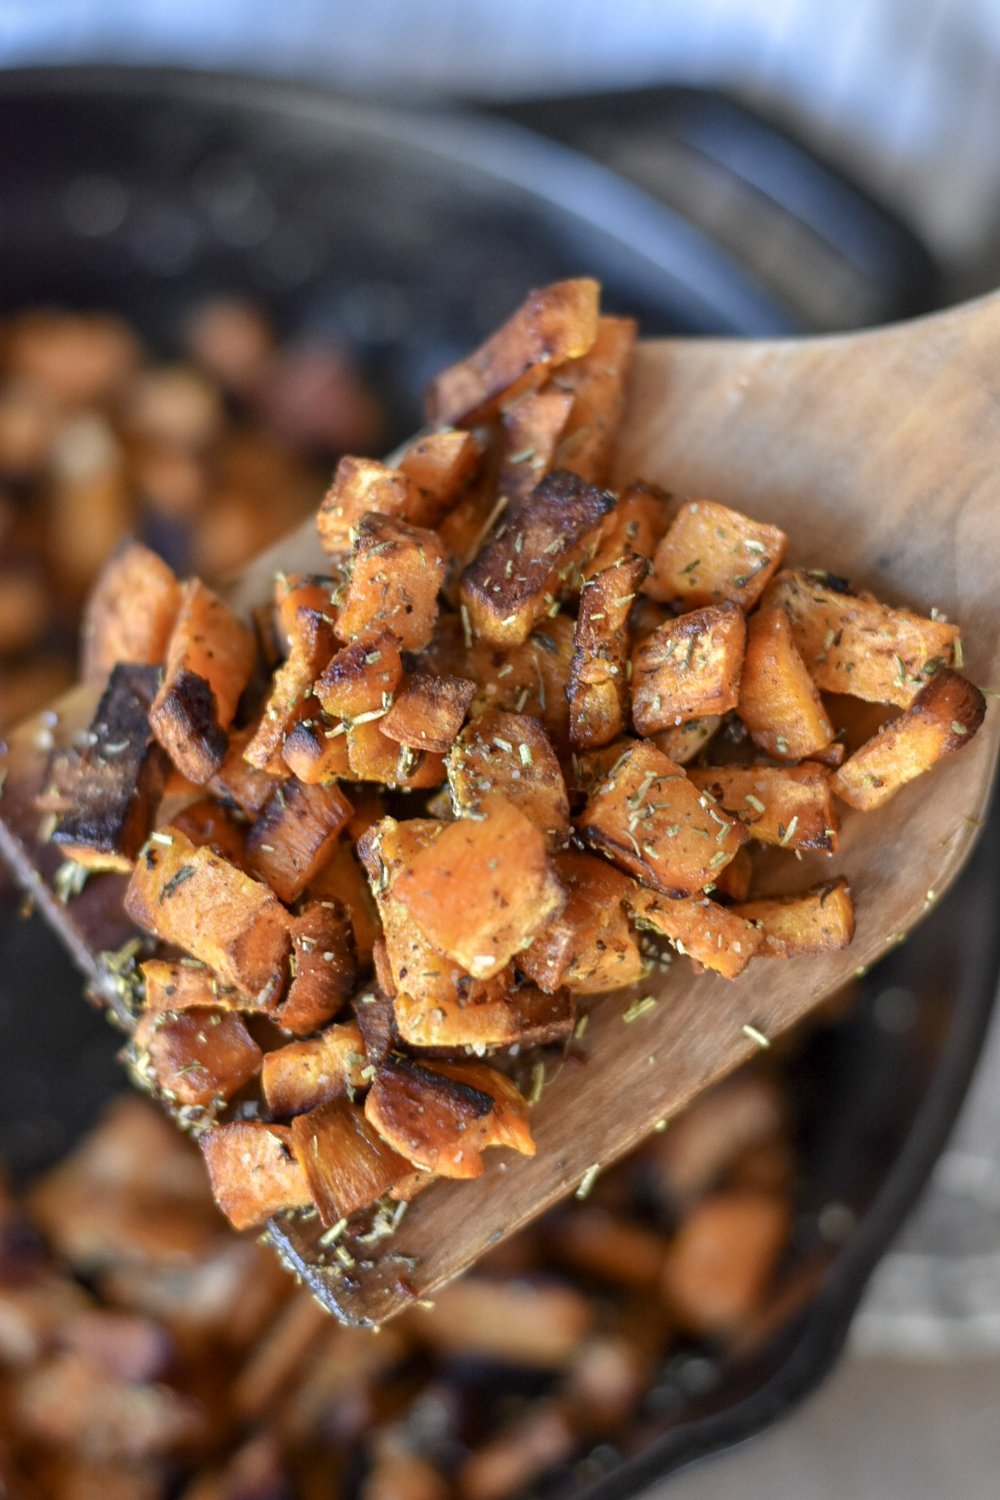 Crispy Cast Iron Sweet Potato Recipe. Get perfectly crisp sweet potatoes by frying them up in a cast iron skillet with herbs for a healthy side dish | Rocky Hedge Farm